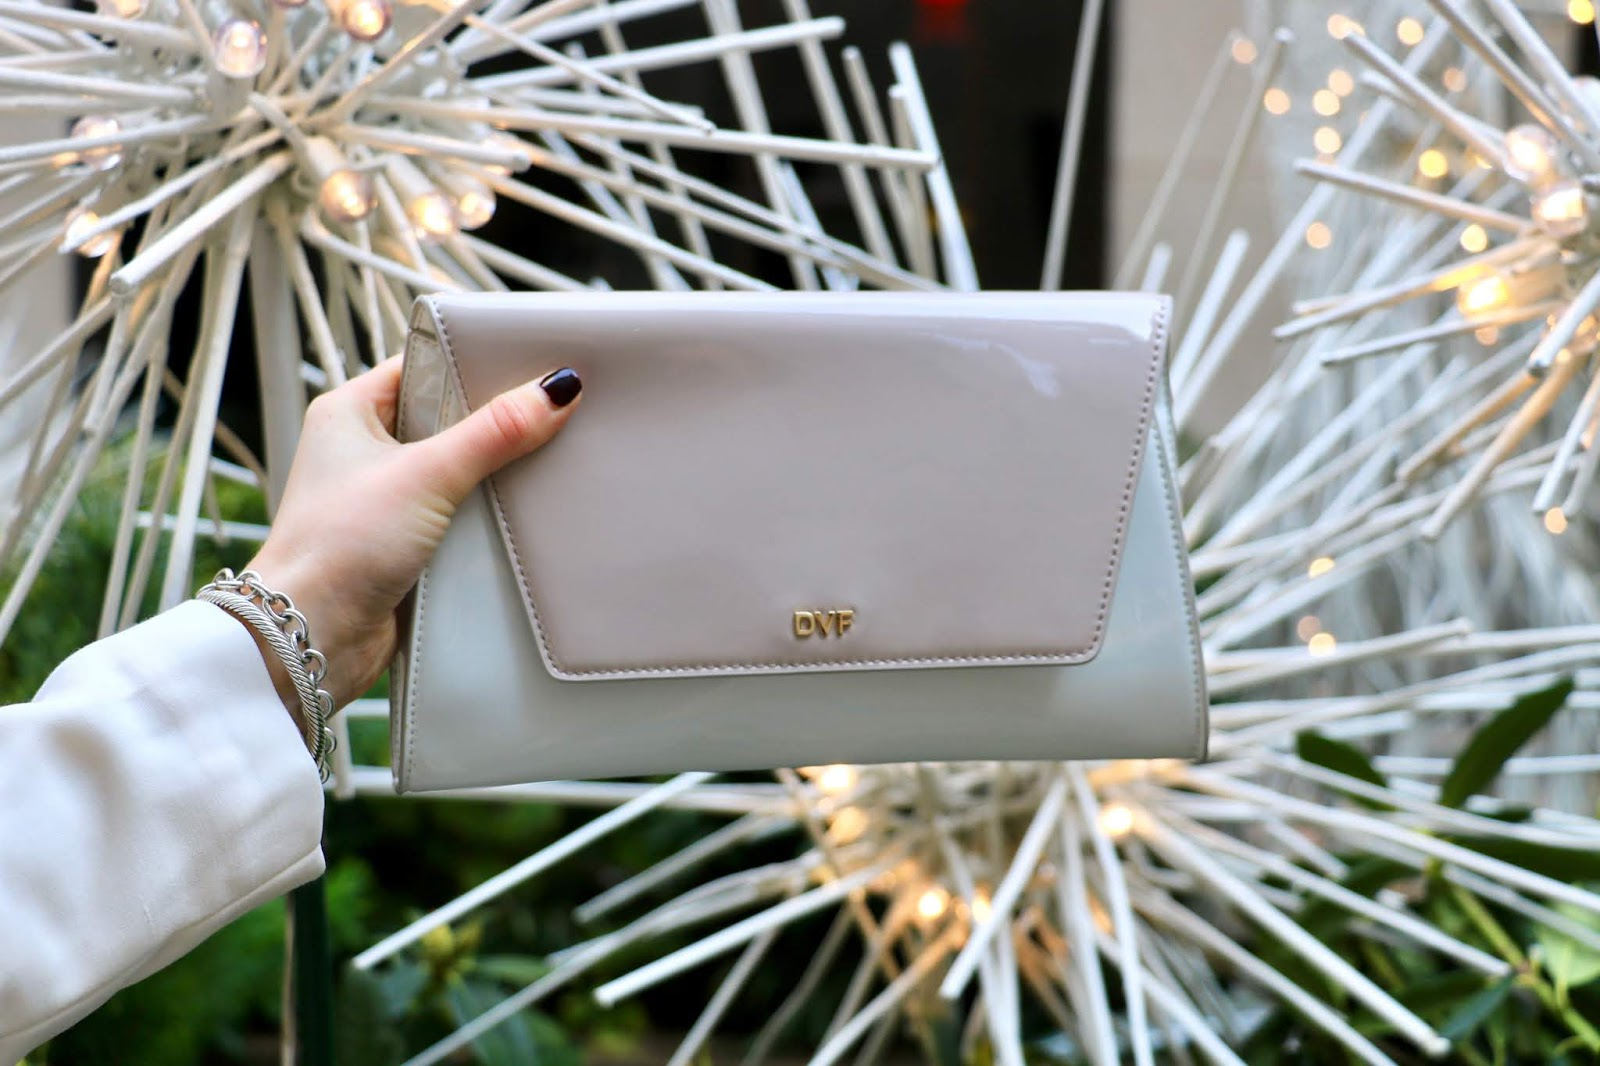 Nyc fashion blogger Kathleen Harper holding a Diane von Furstenberg white patent leather clutch.